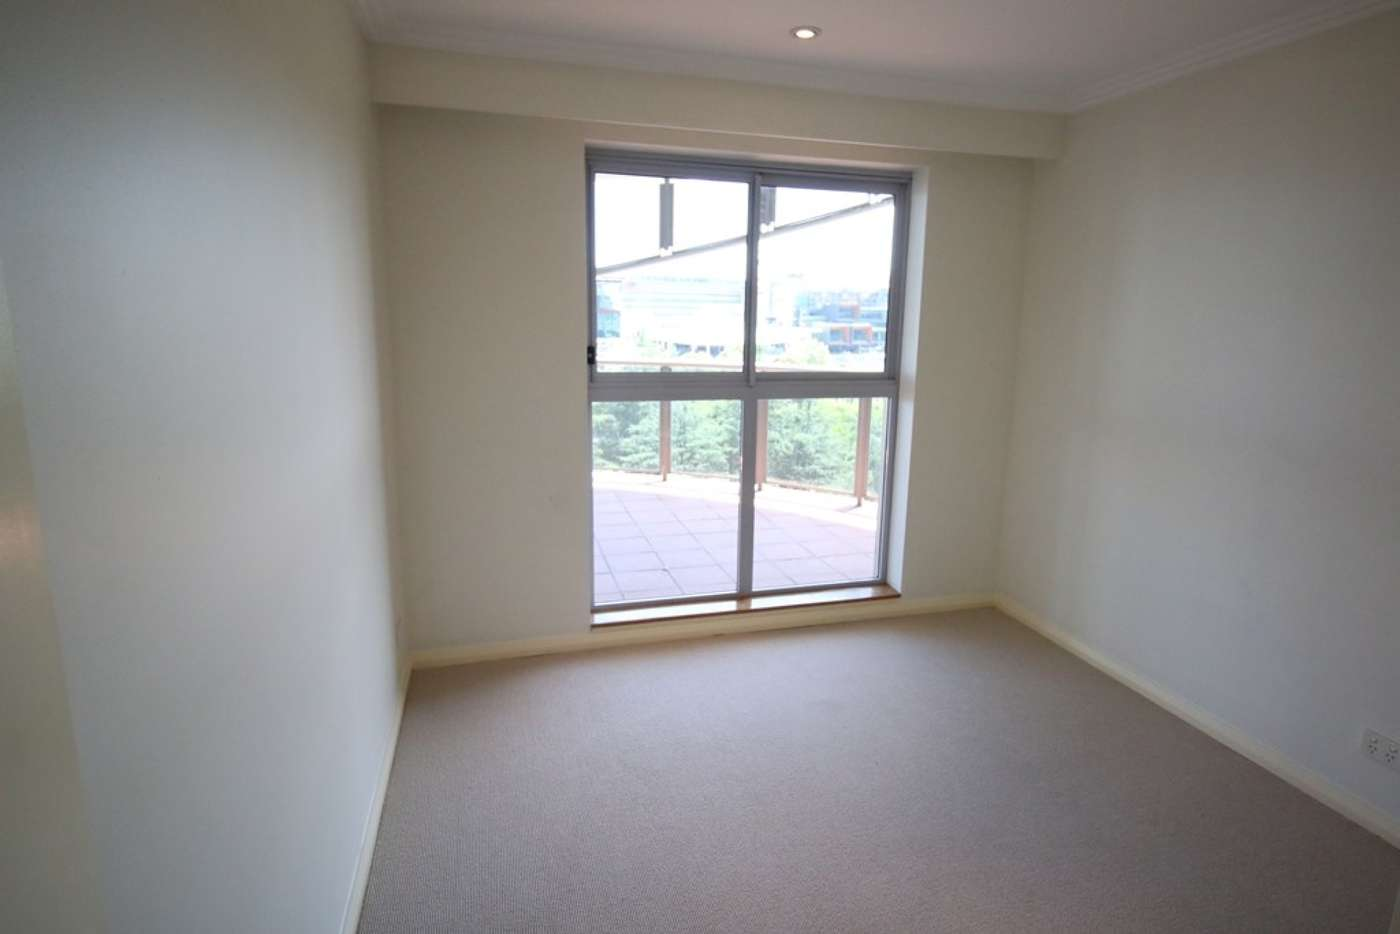 Sixth view of Homely apartment listing, 28 Harbour Street, Sydney NSW 2000